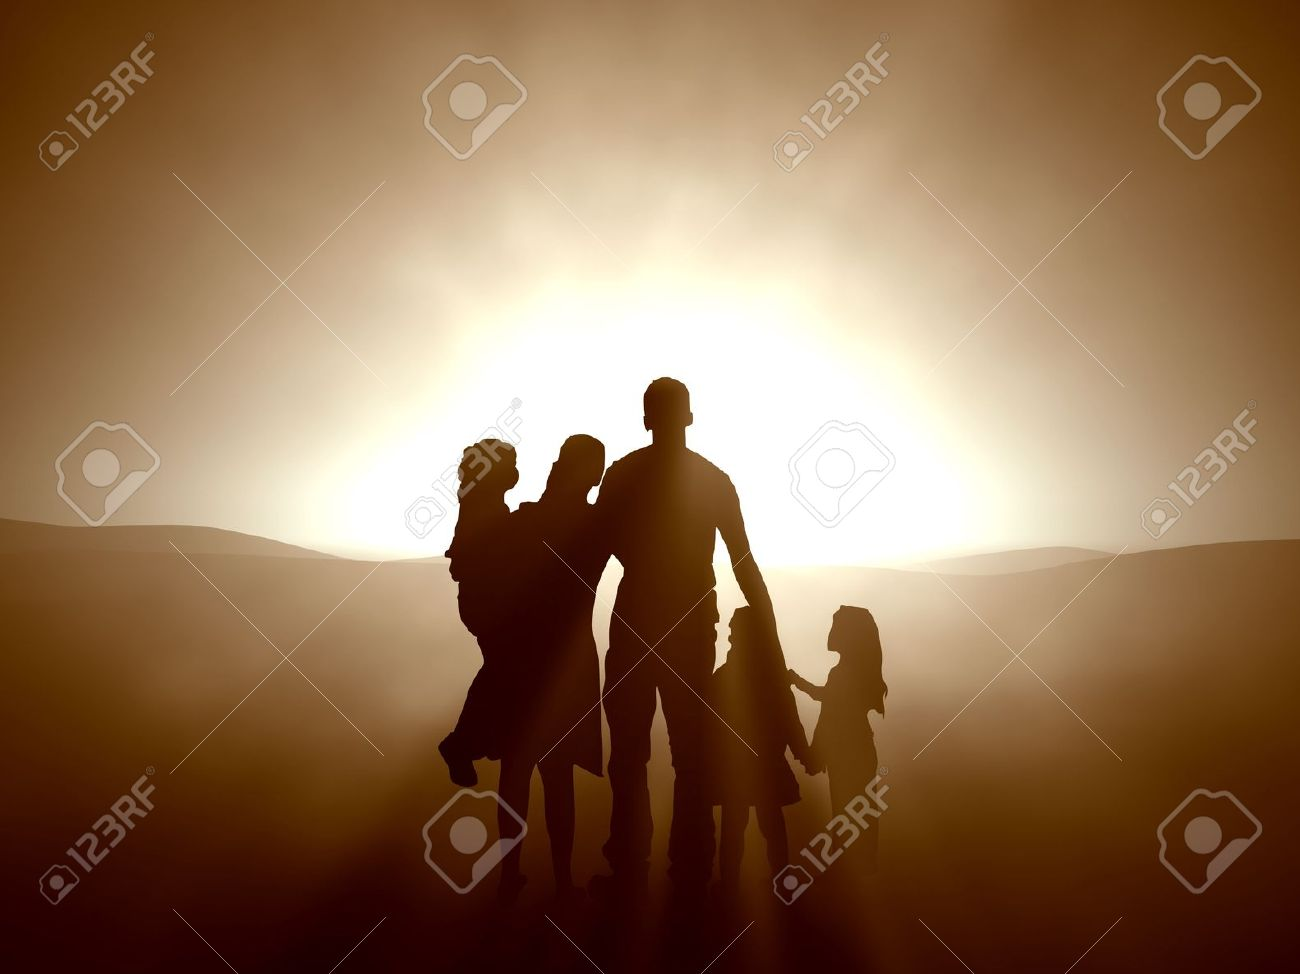 Silhouettes of a family looking towards the light. - 7150679